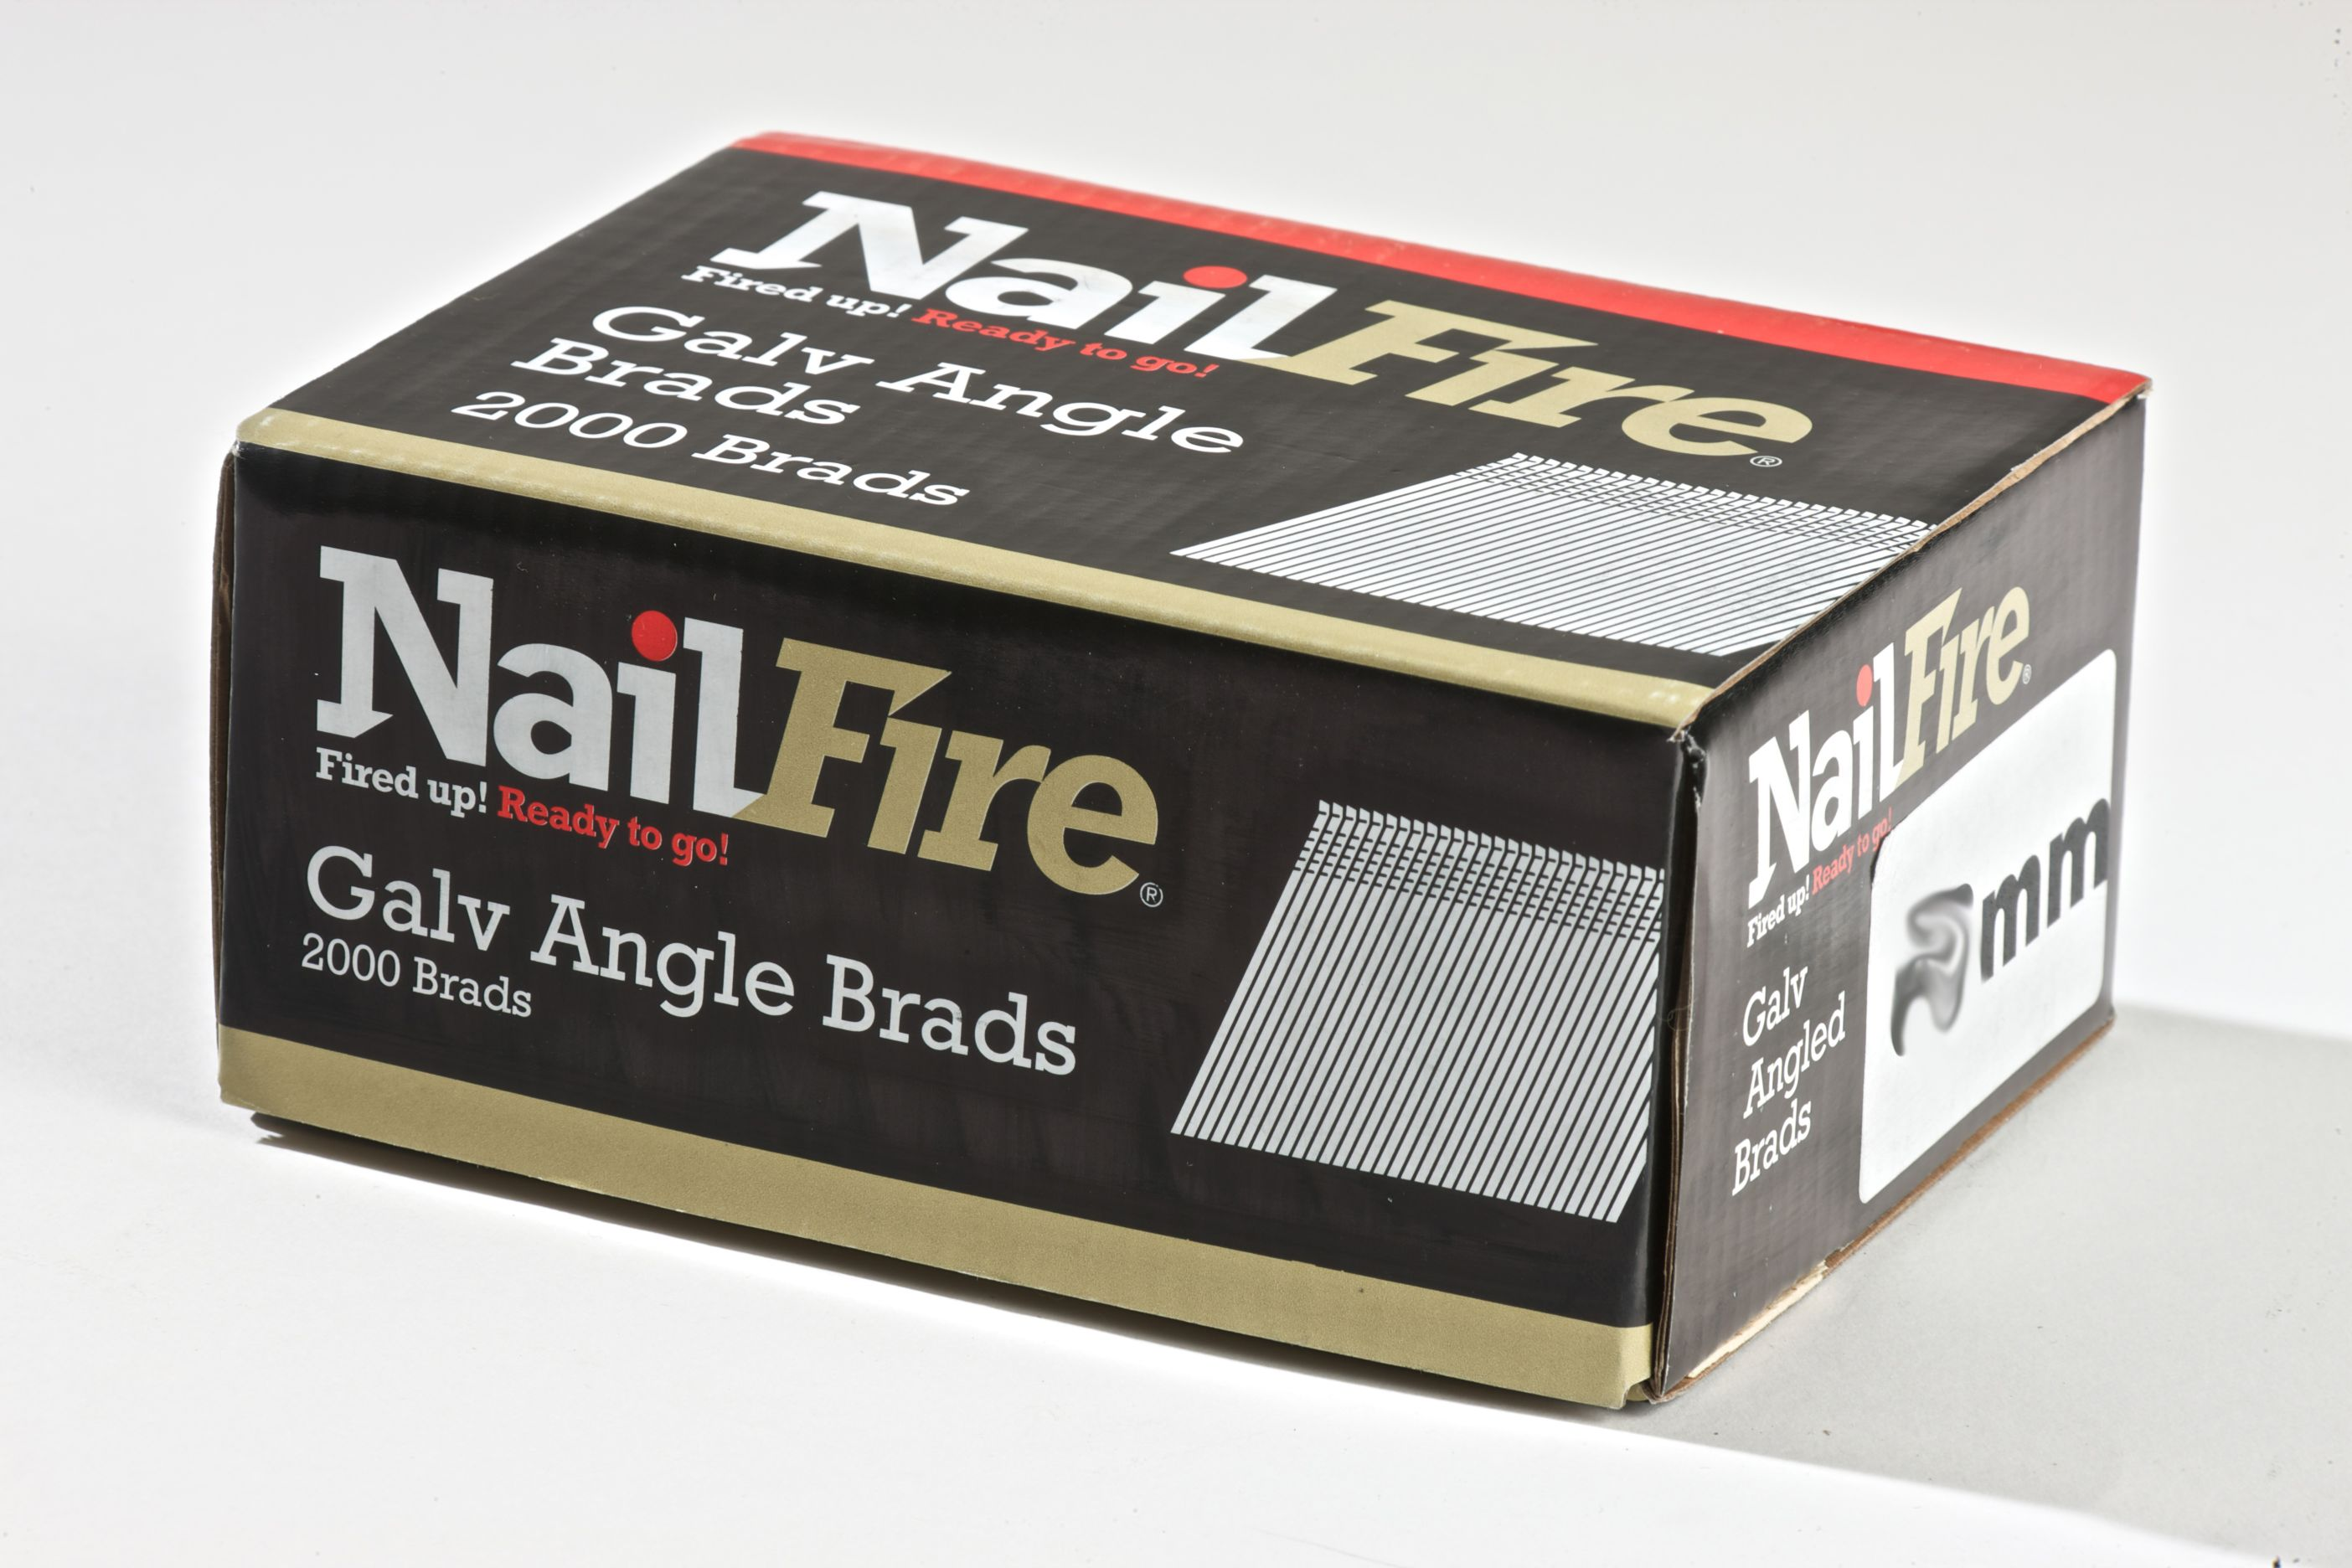 NAILFIRE 2ND FIX ANGLED E-GALV BRAD & FUEL PACK 64MM (TUB OF 2000)